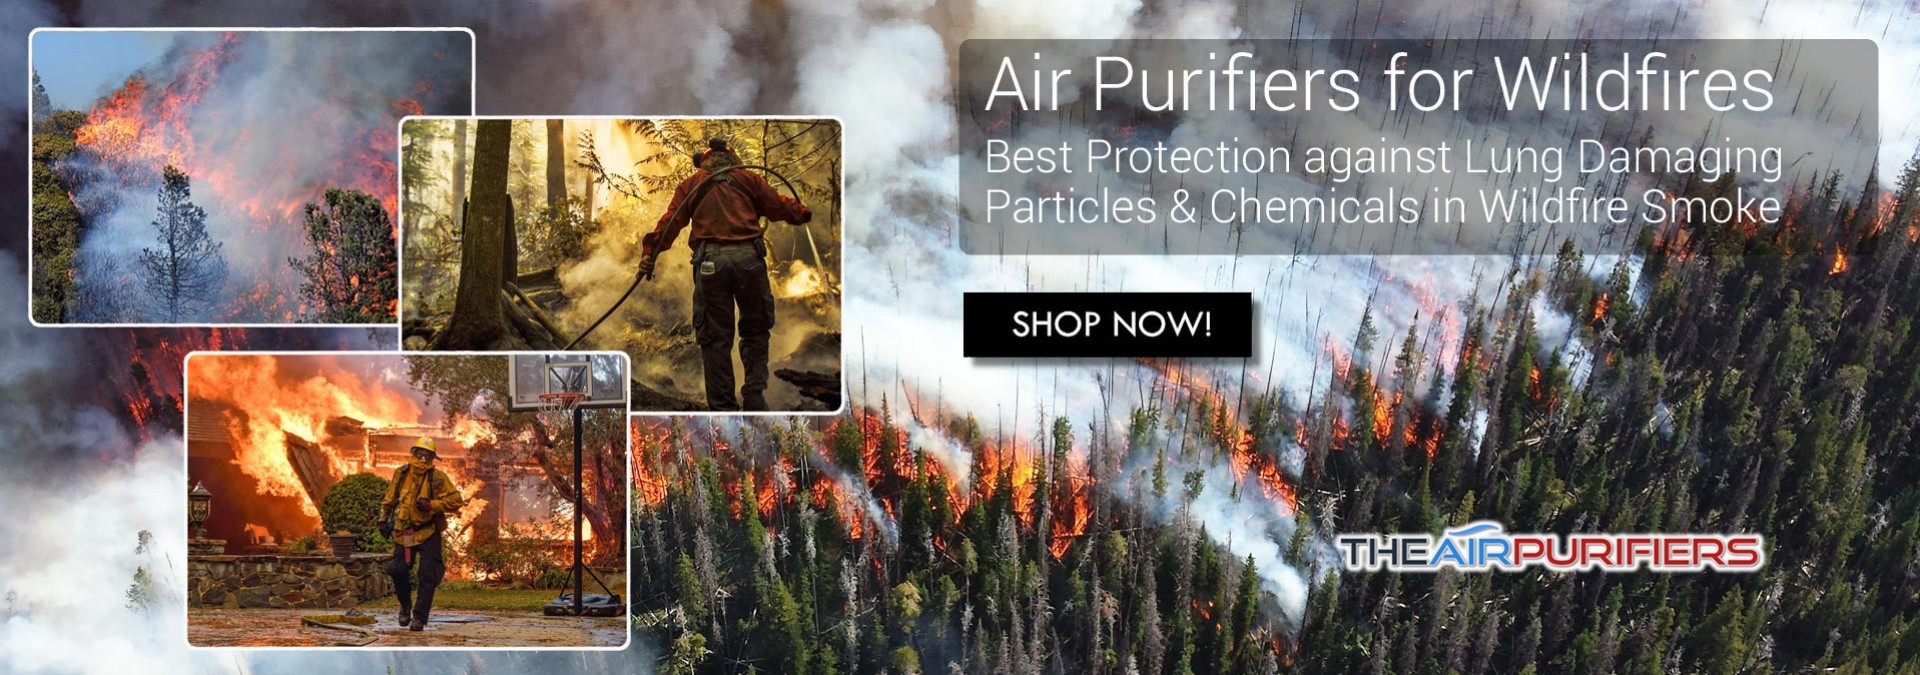 Air Purifiers for Wildfire Smoke at TheAirPurifiers.com